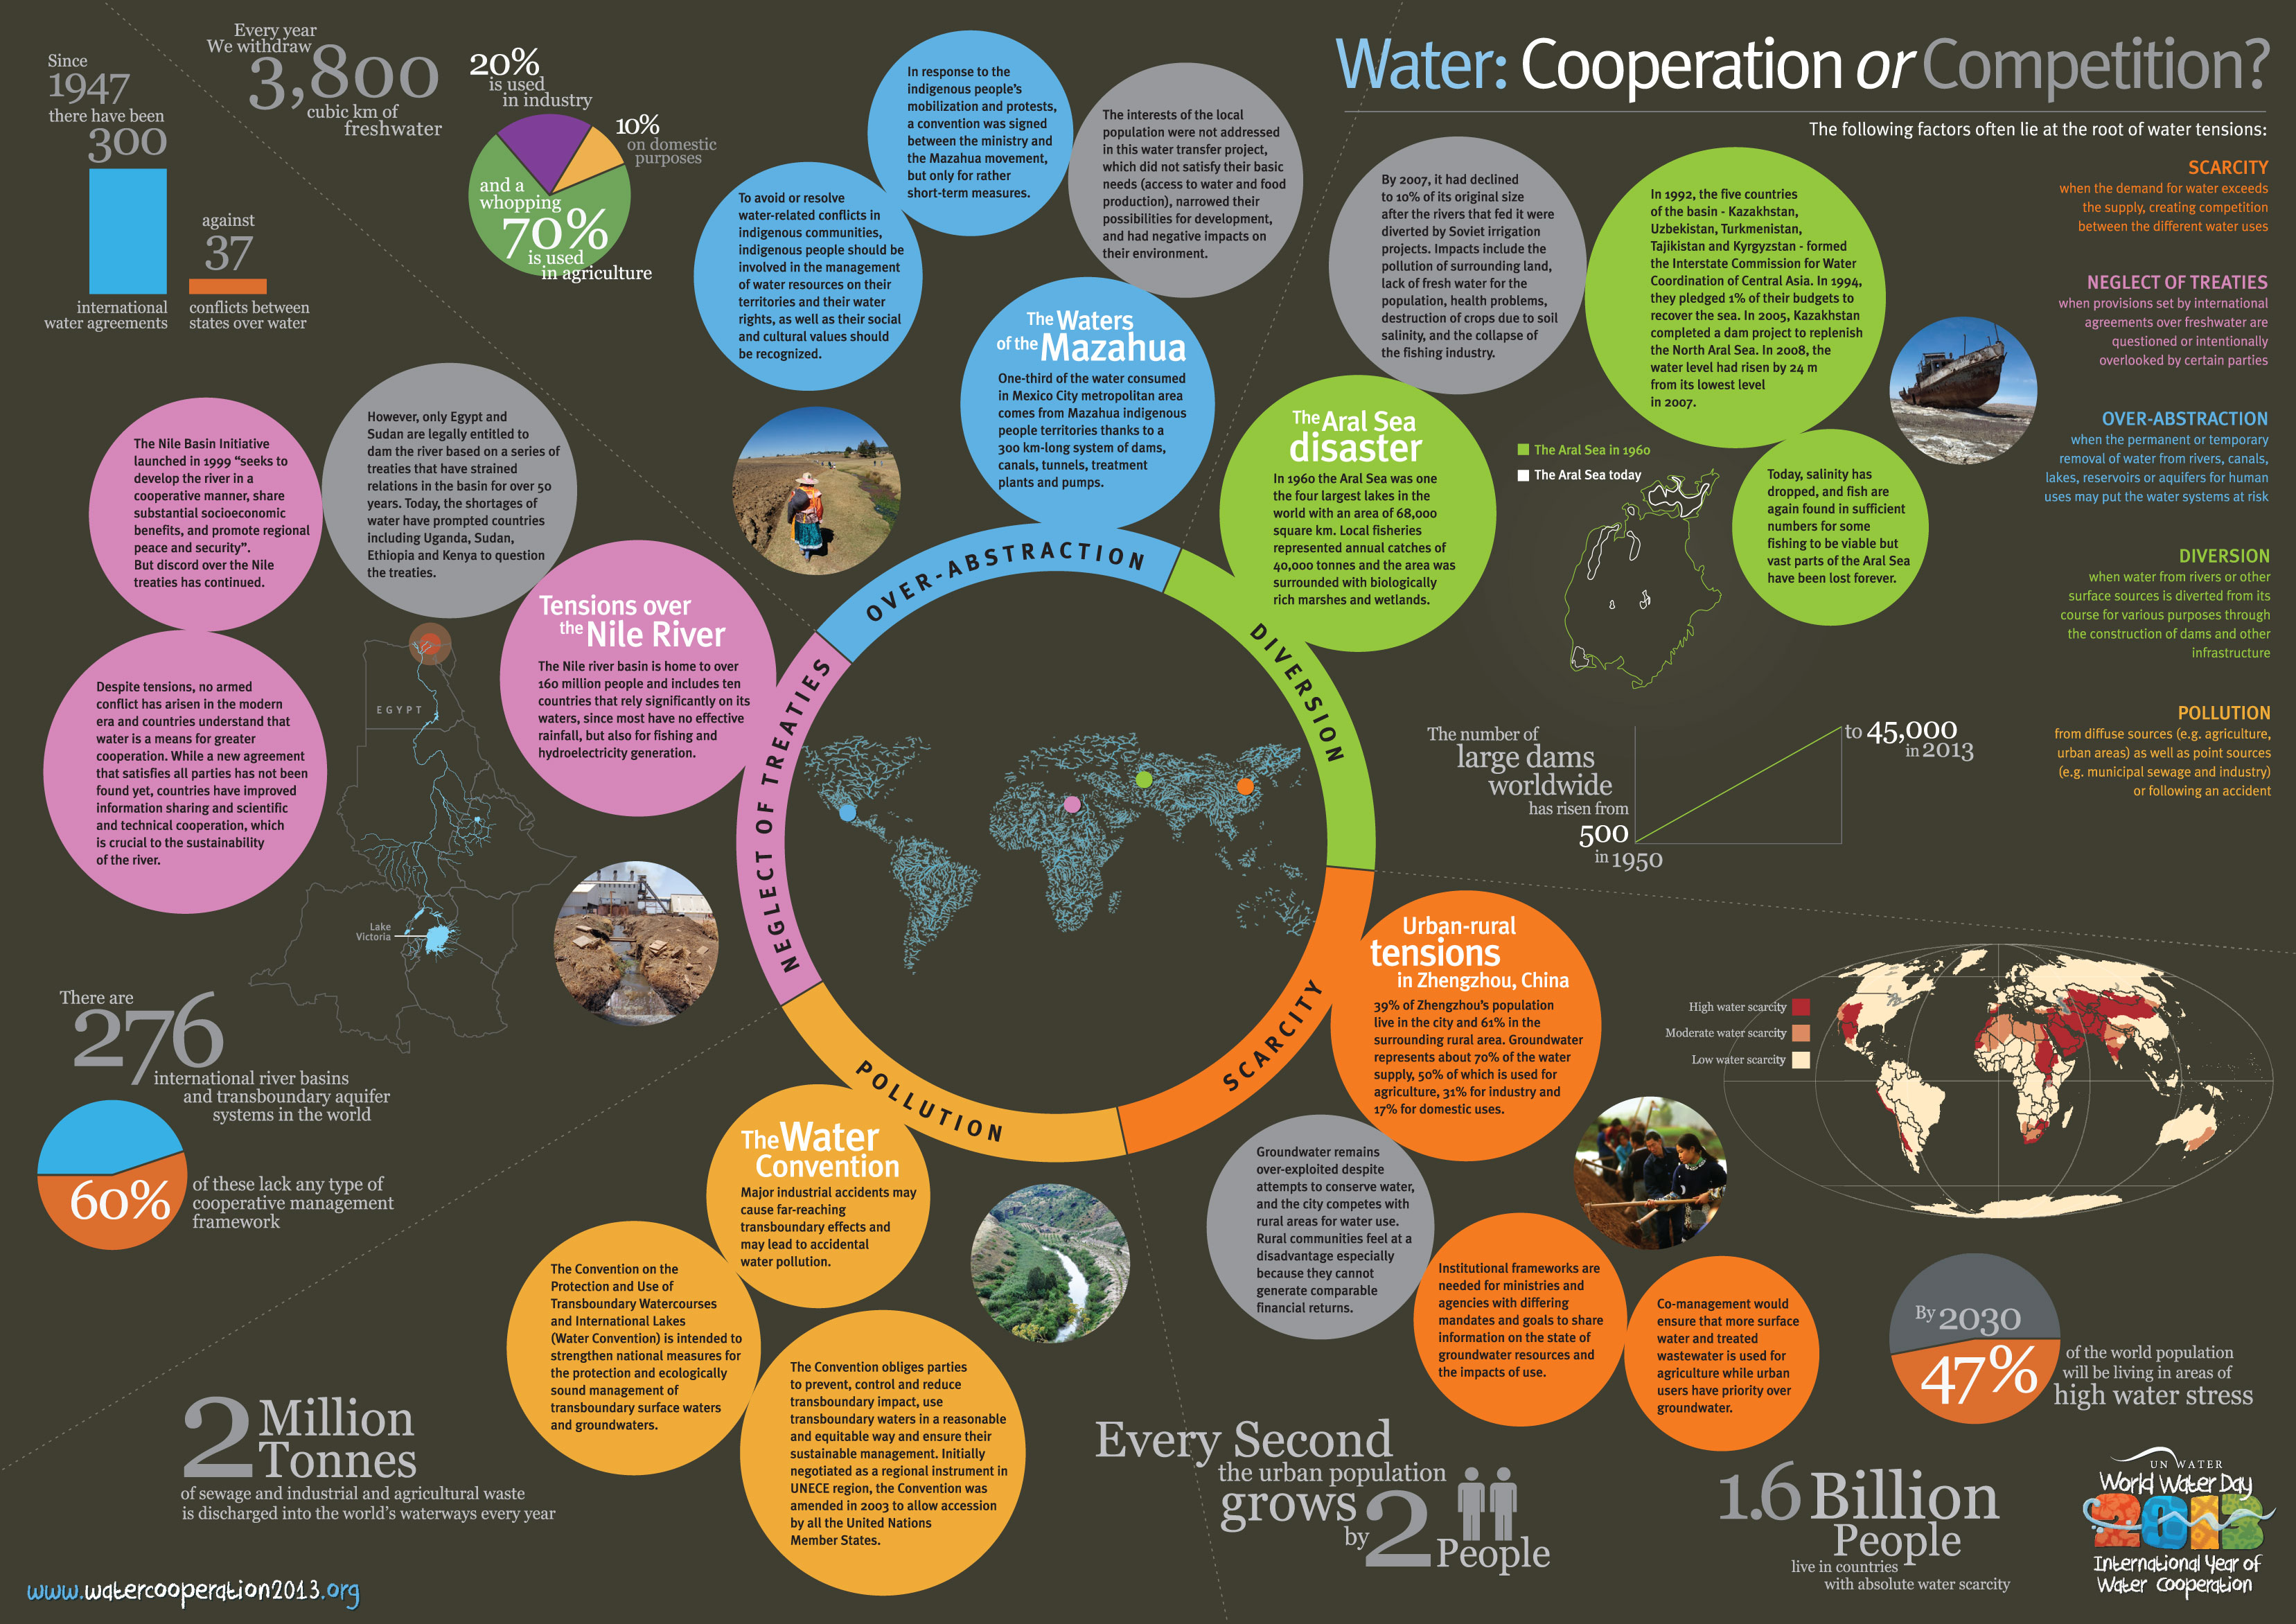 Water Cooperation or Competition